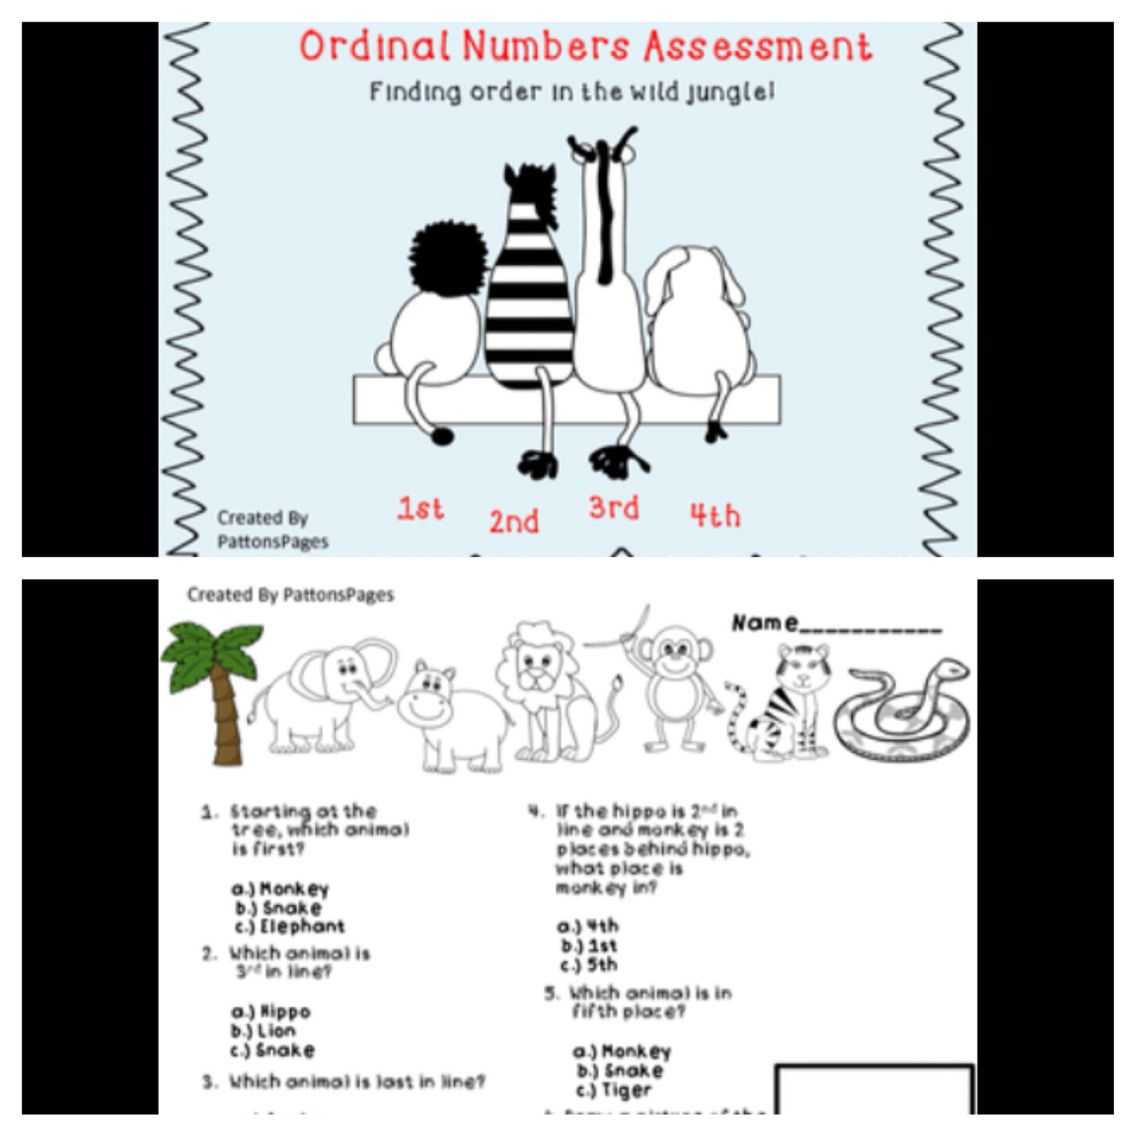 Ordinal Numbers Assessment S